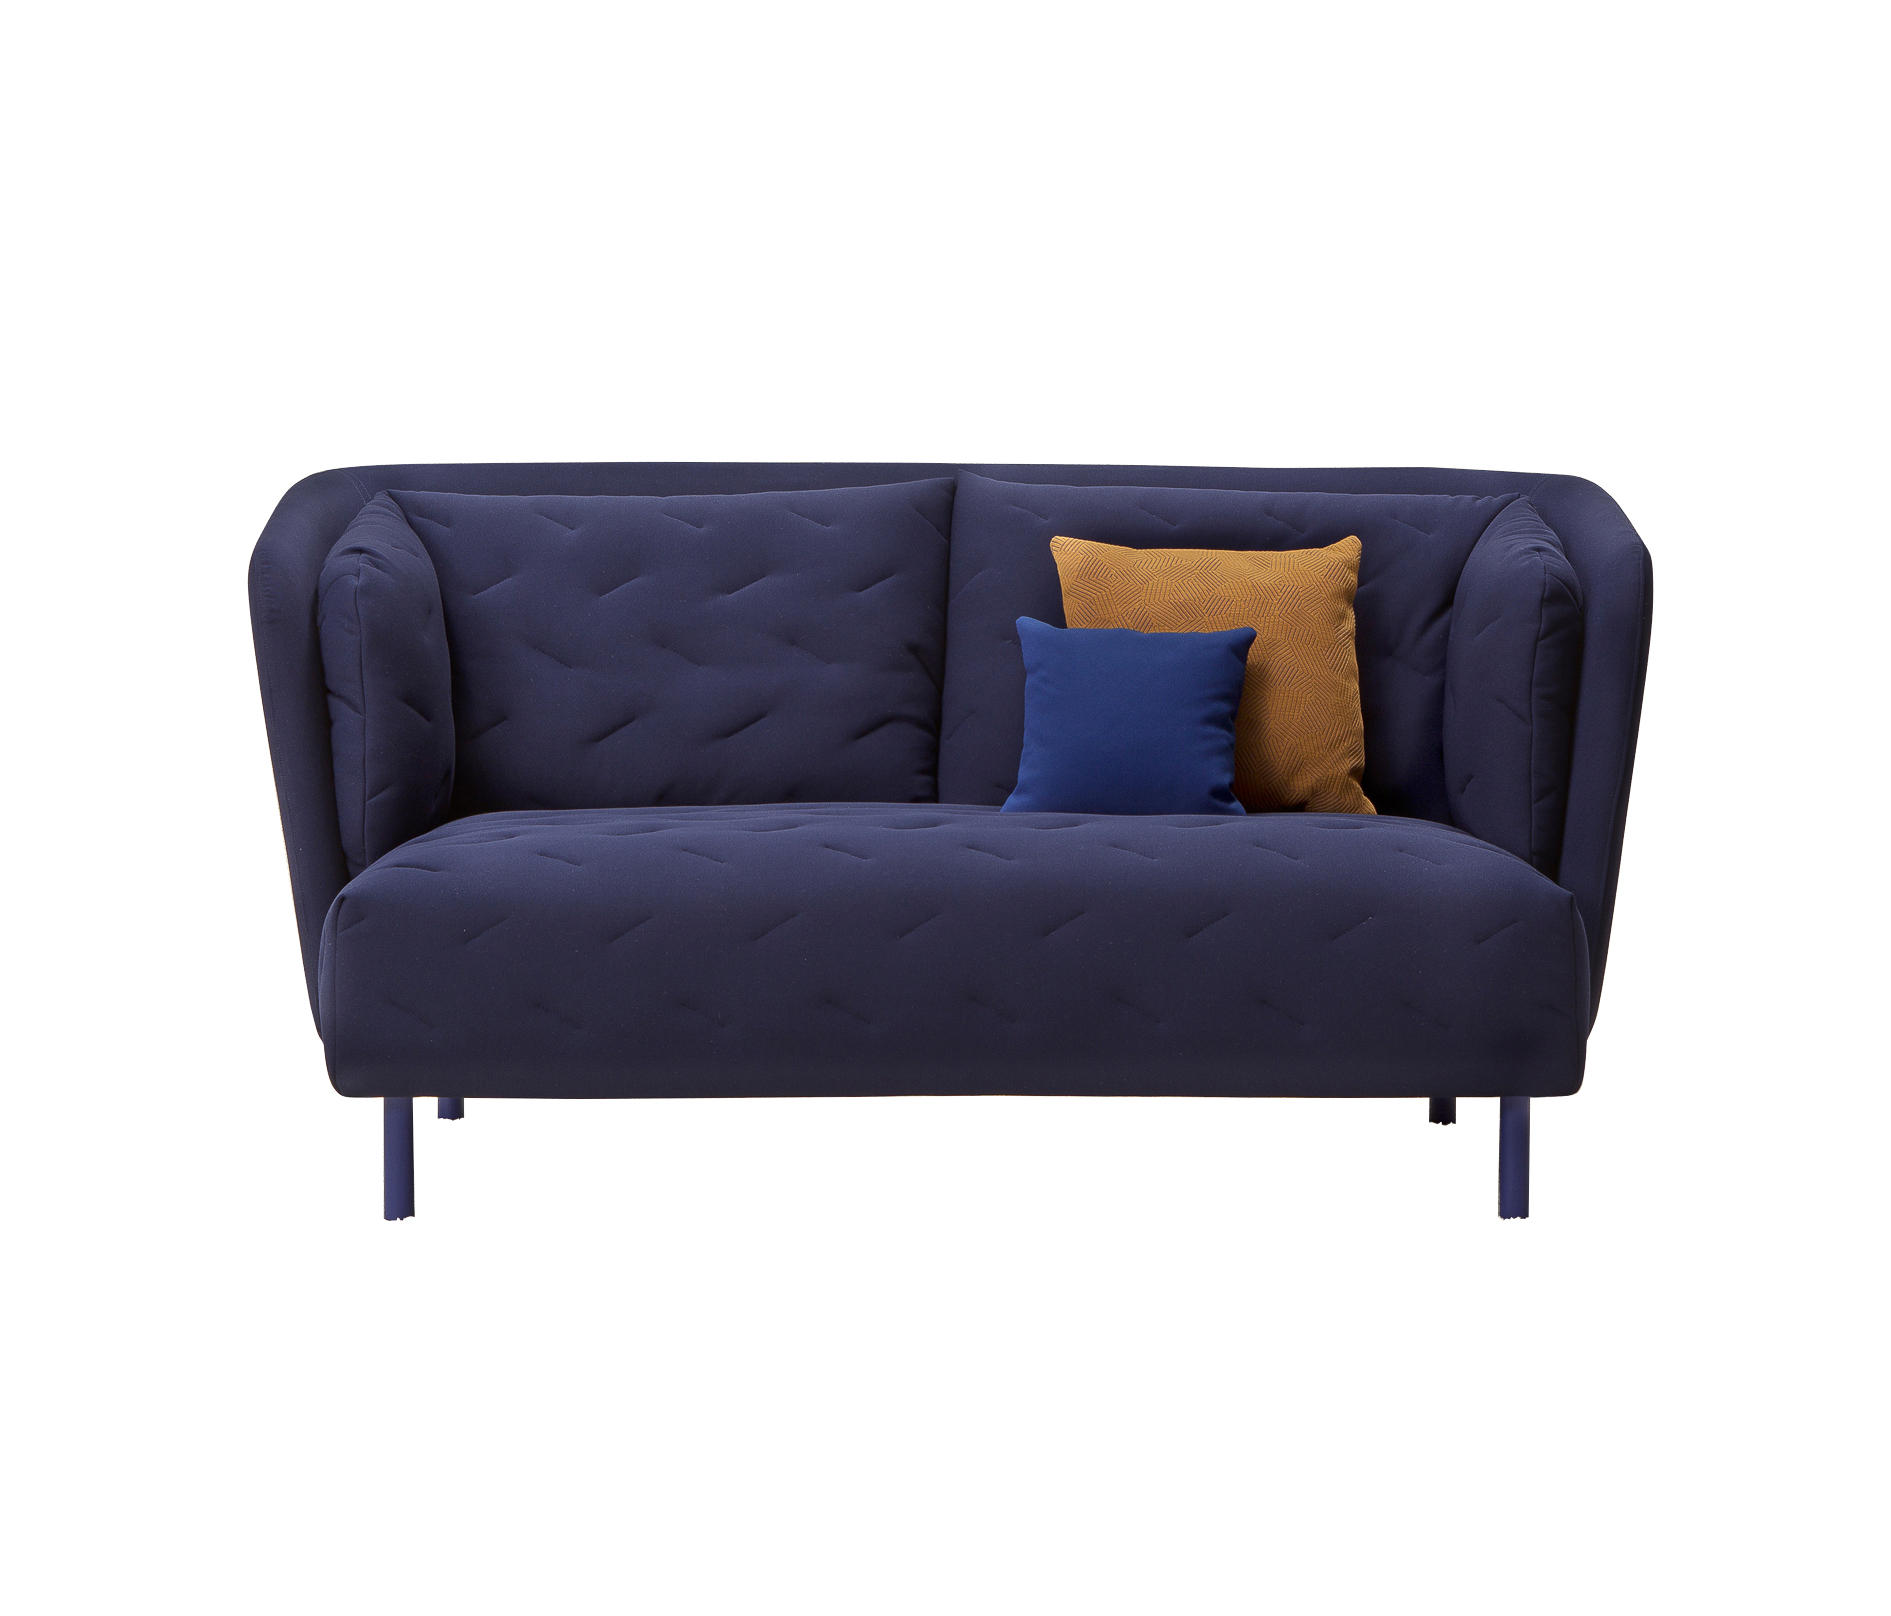 Lounge Sofa Obi Obi Lounge Sofas From Sancal Architonic